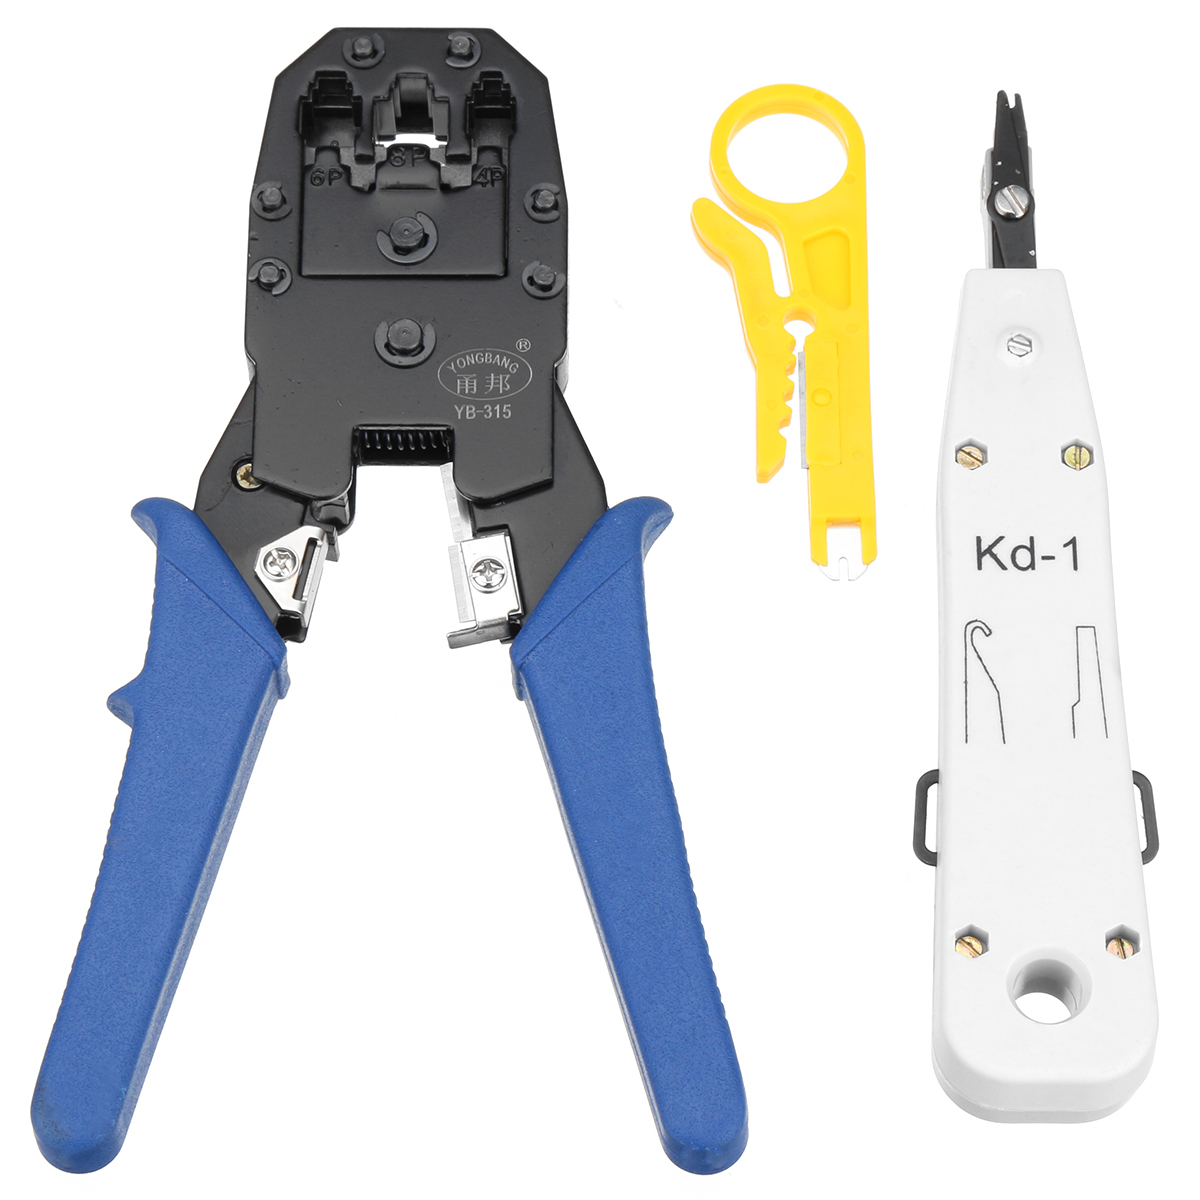 hight resolution of network ethernet lan rj11 rj45 cat5 cat6 cable tester wire tracker tool kit